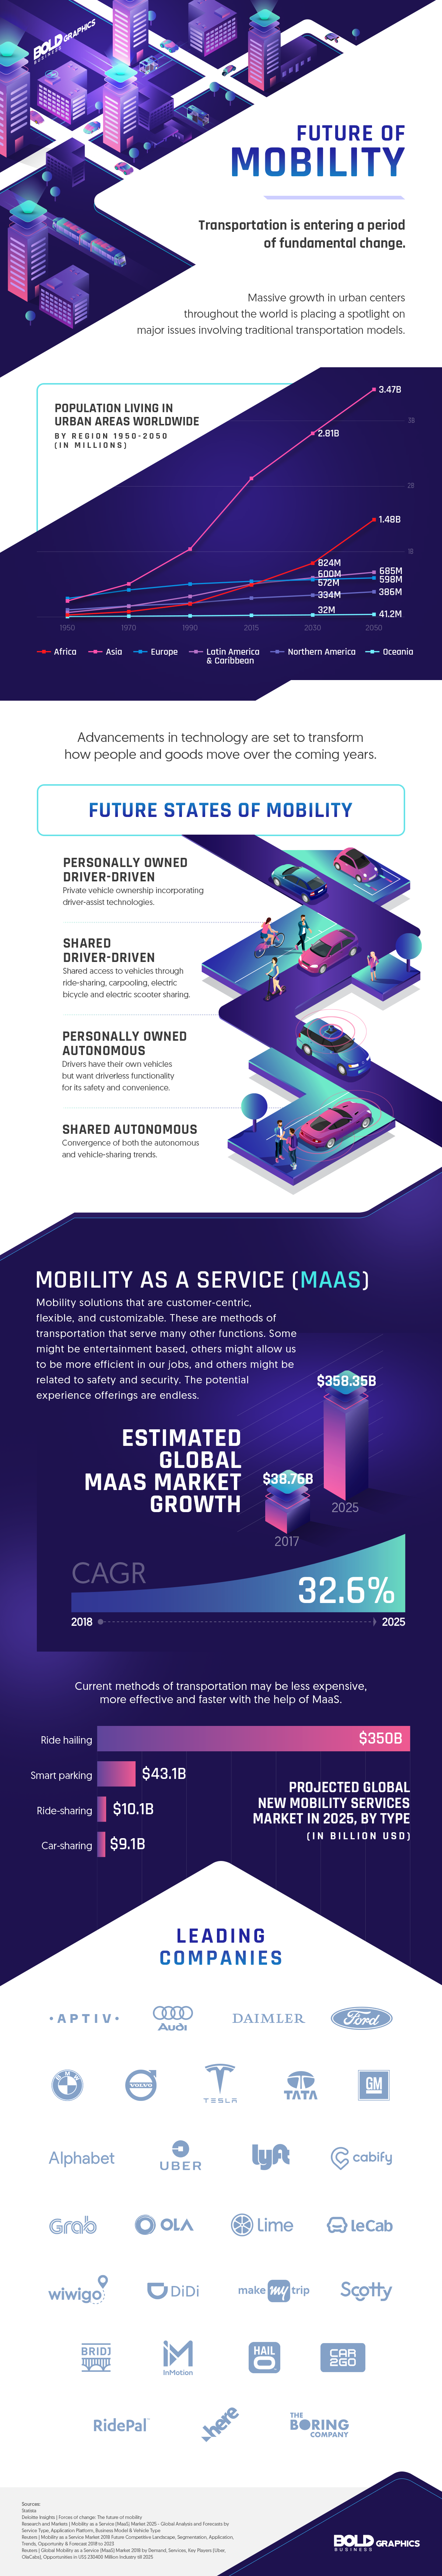 Future of Mobility, Mobility Solutions Infographic